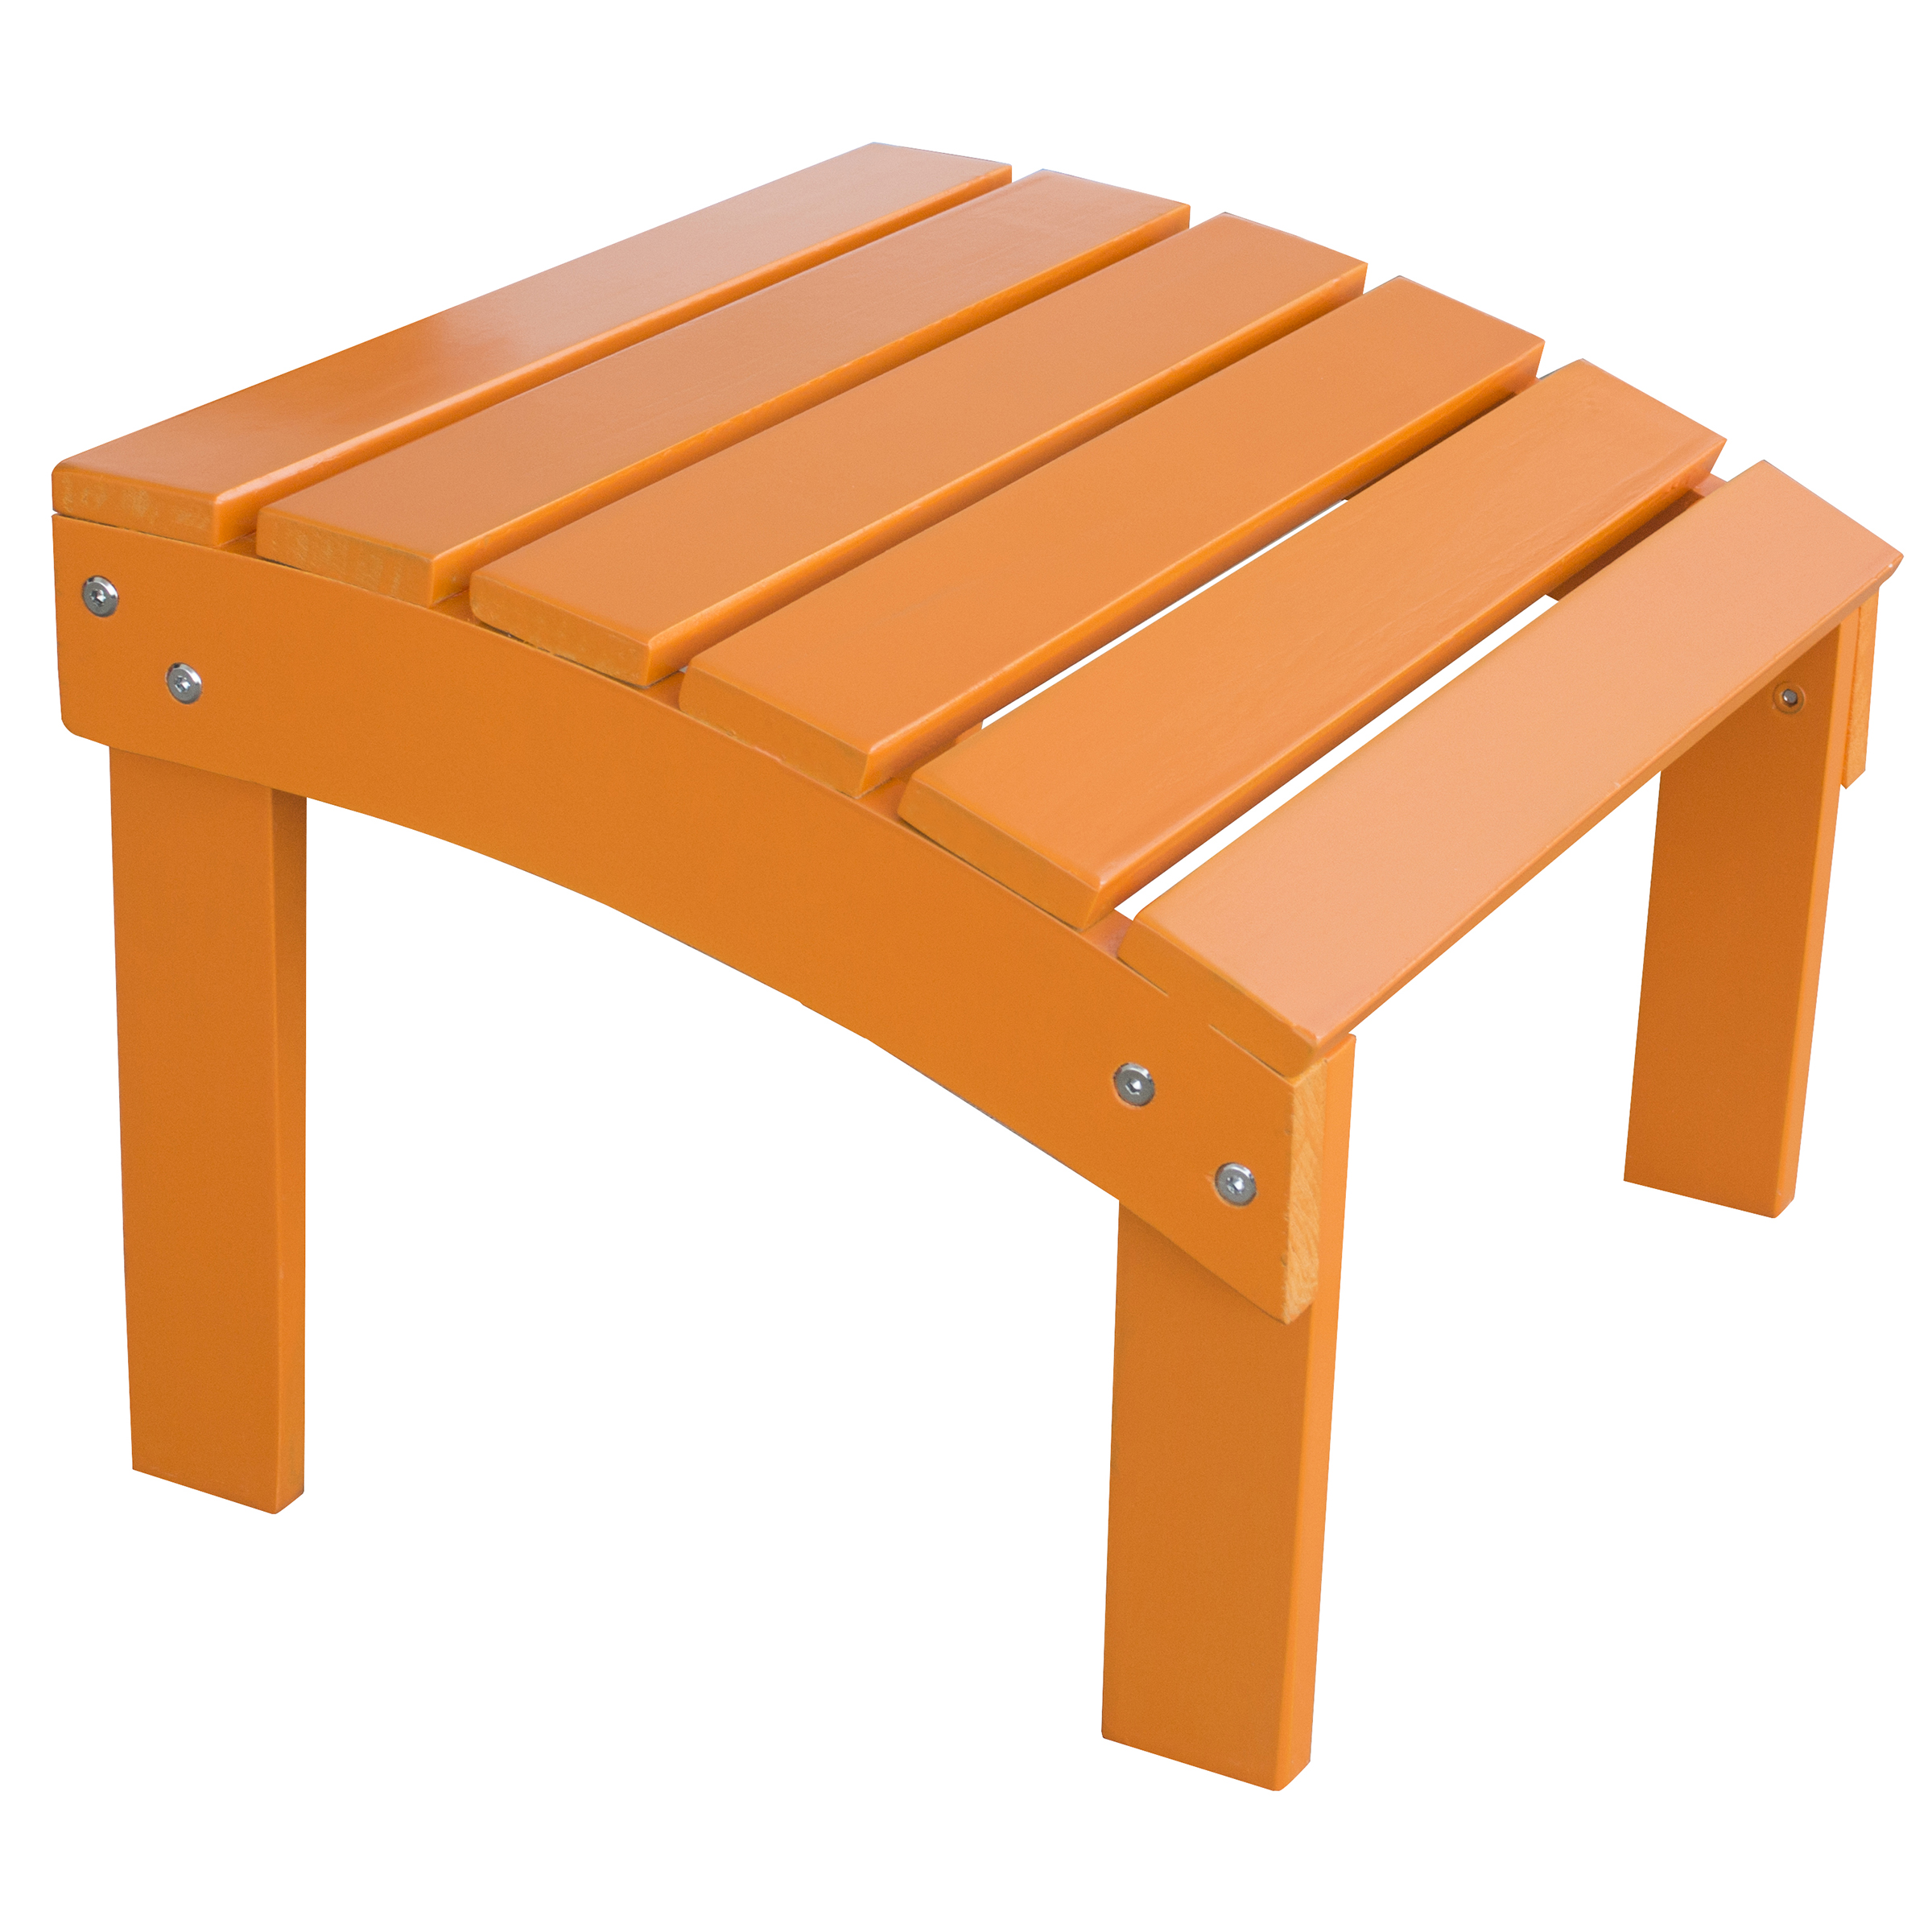 AmeriHome Solid Wood Adirondack Footrest Ottoman with Painted Finish Tangerine by Buffalo Corp